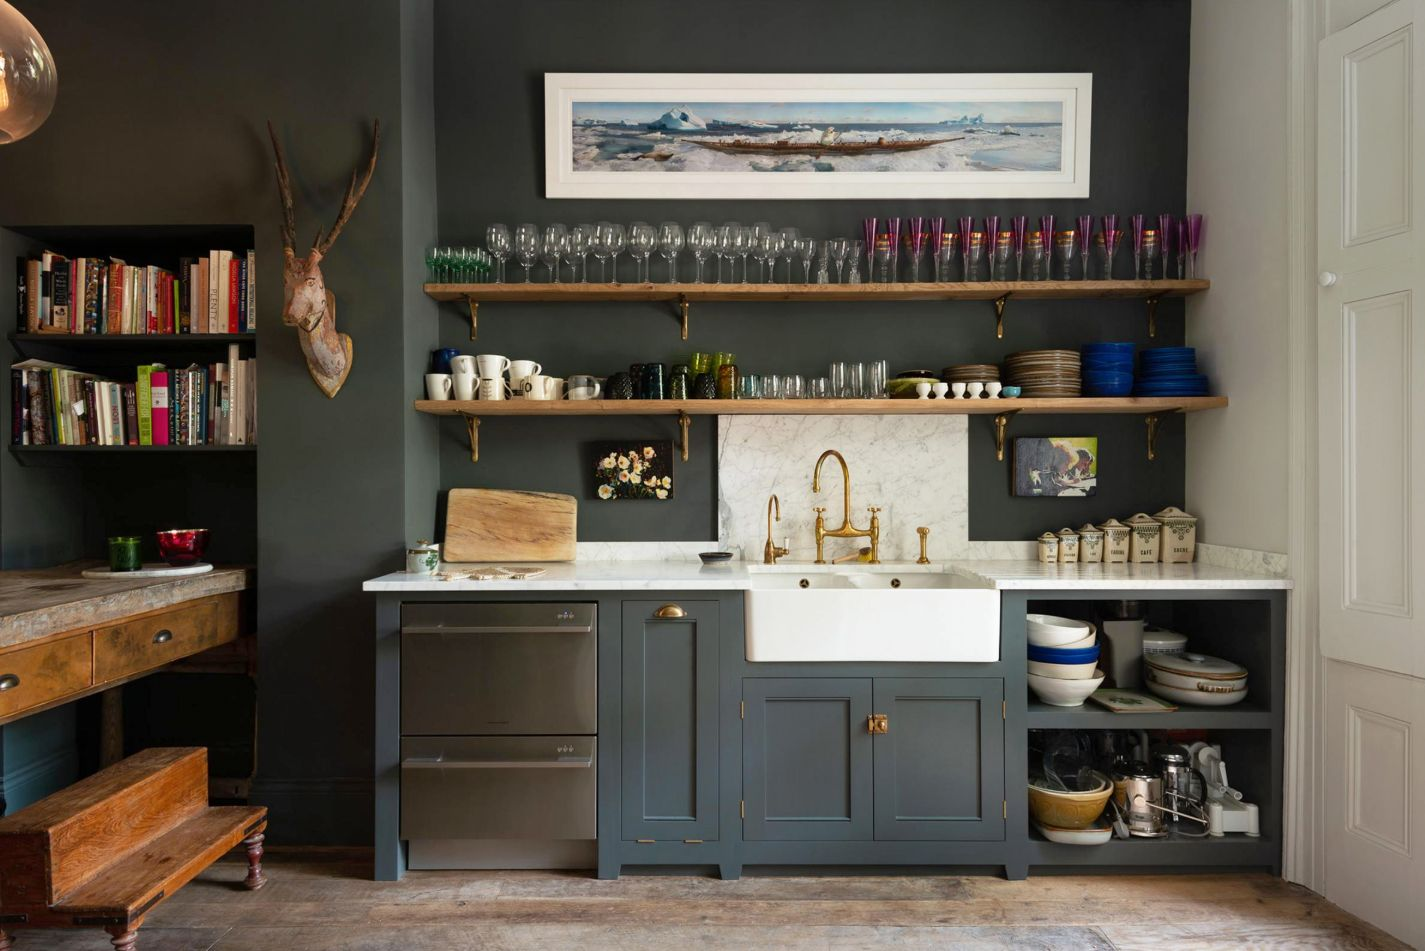 35 Unique Kitchen Storage Ideas - Easy Storage Solutions for ...